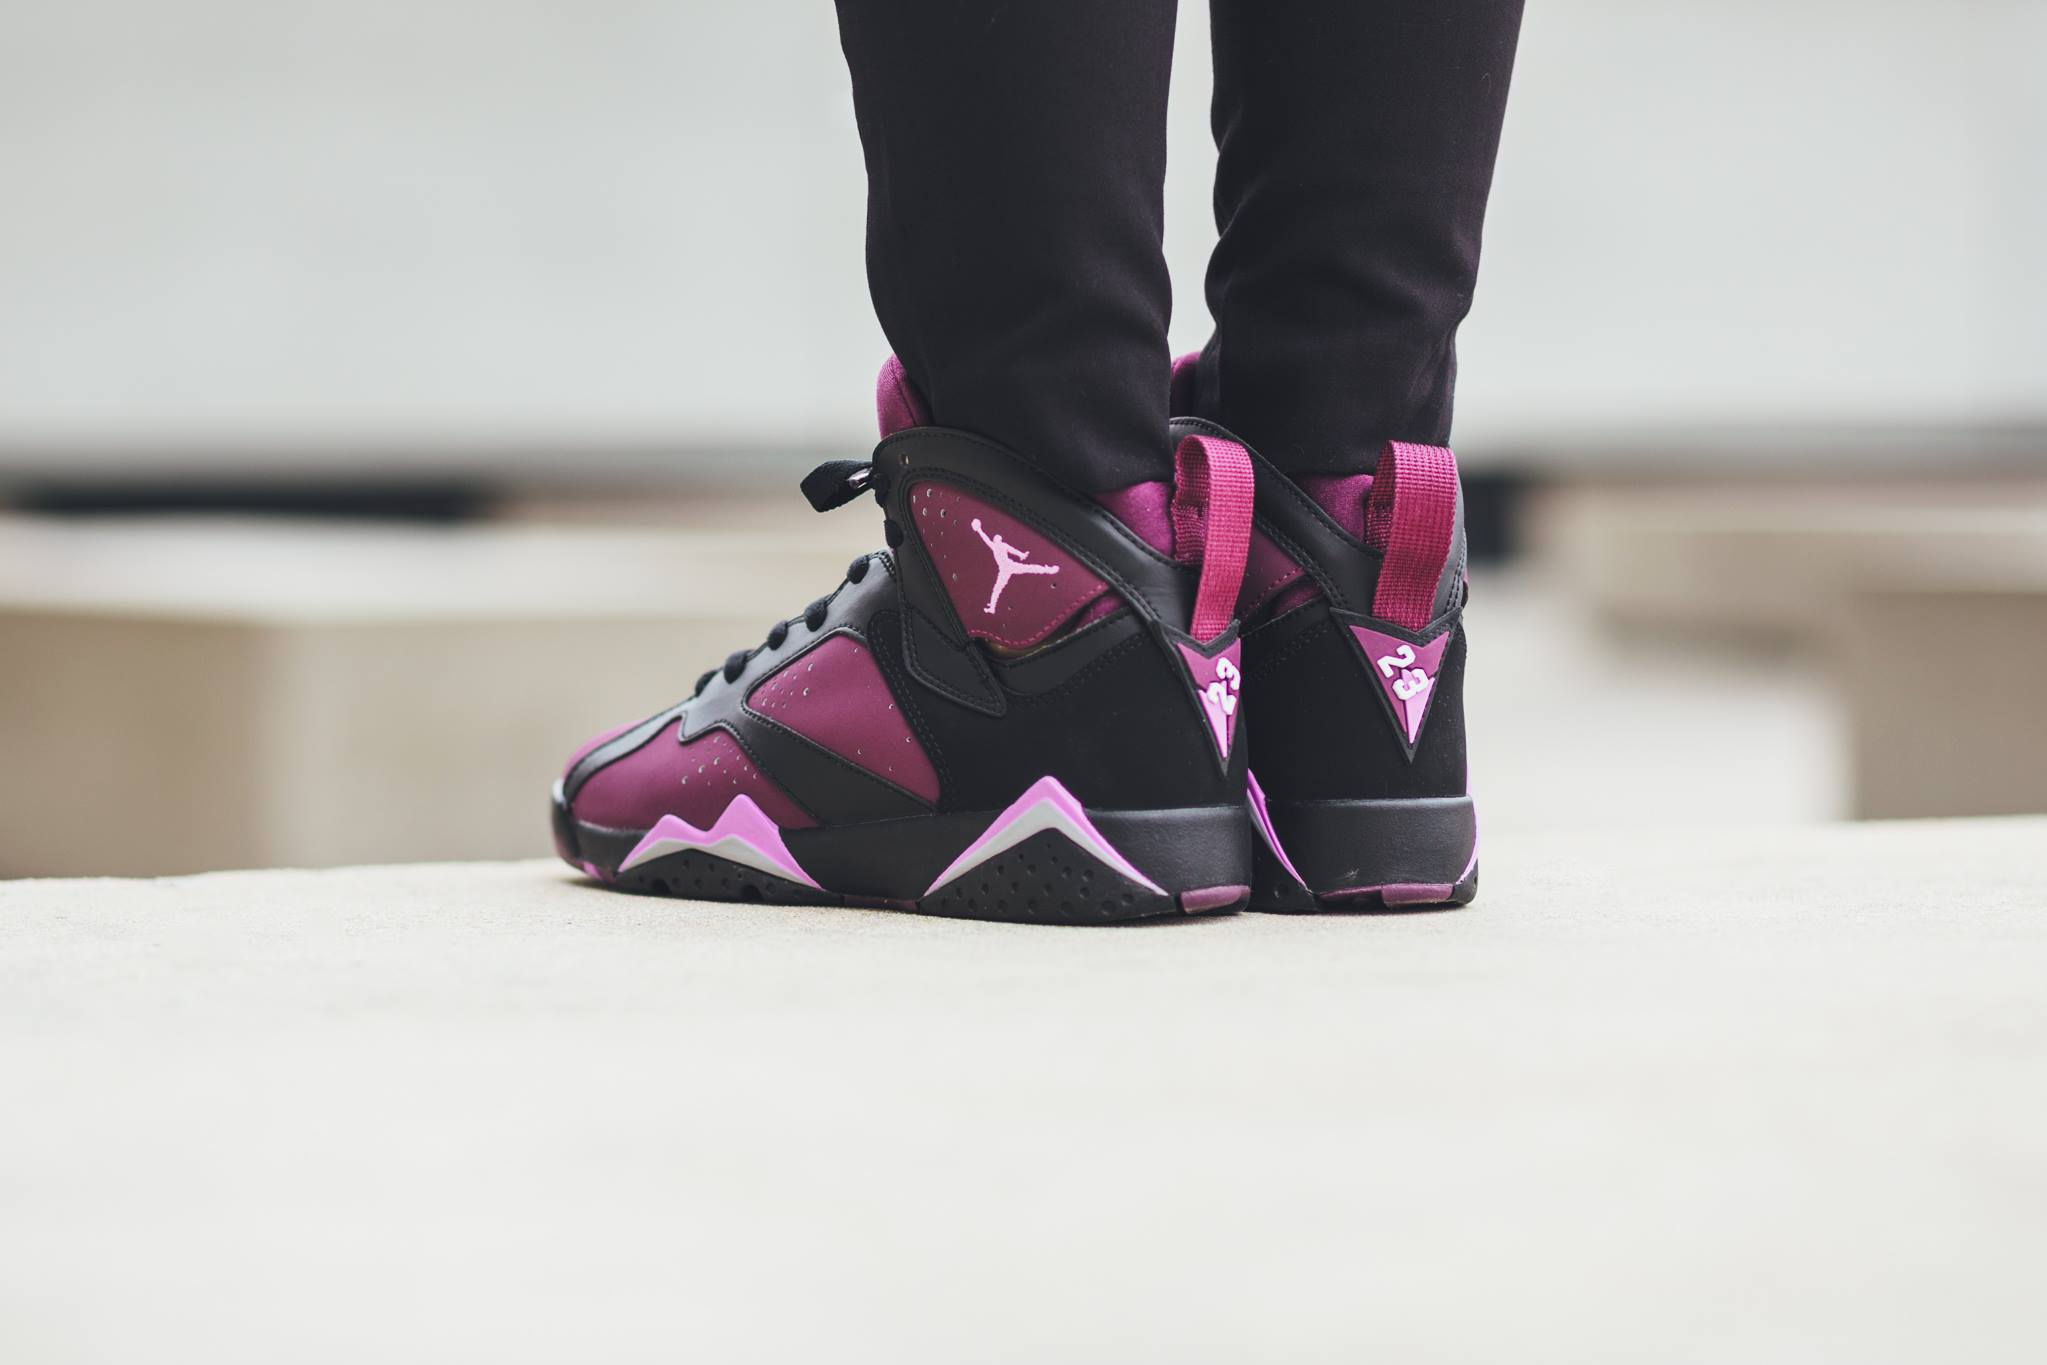 442960-009-air-jordan-7-retro-mulberry-01